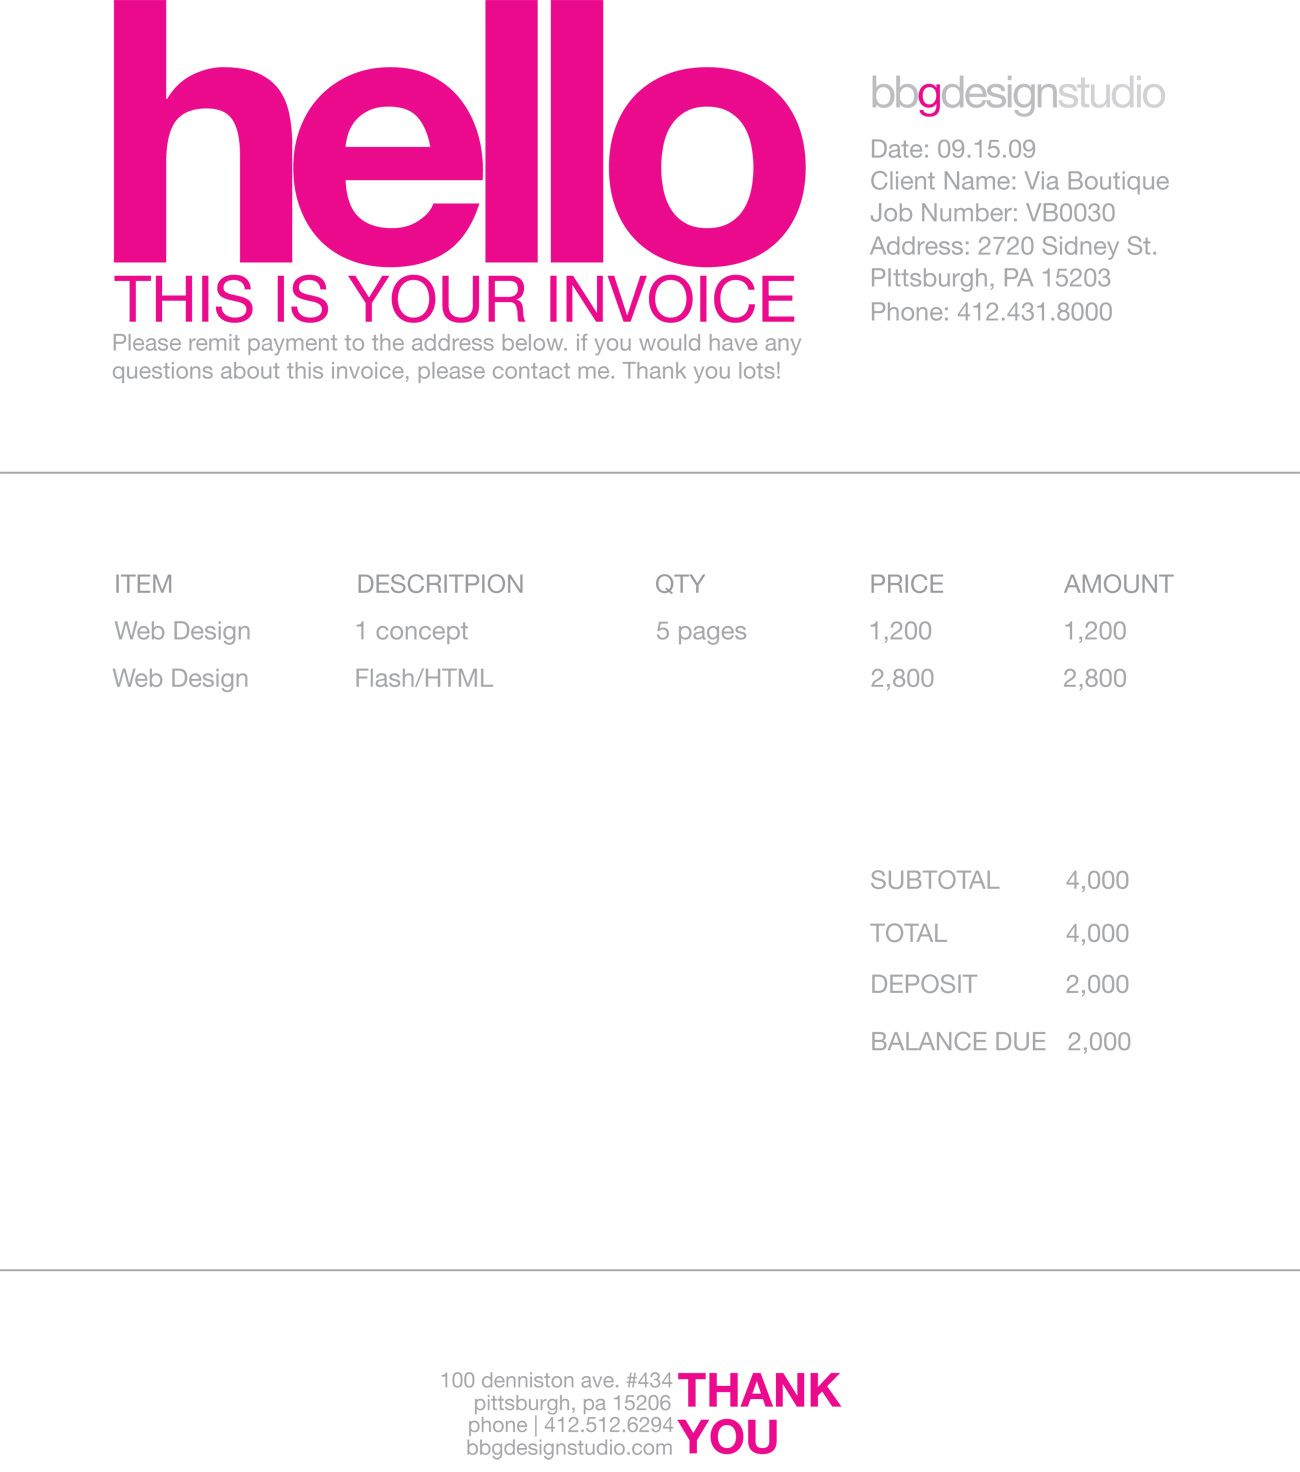 Hucareus  Terrific  Images About Invoice Design On Pinterest With Magnificent Apple Invoice Besides Paypal Invoice Charges Furthermore Printable Invoices Free With Captivating How Does Paypal Invoice Work Also Toyota Camry Invoice In Addition Nvc Invoice And Fillable Invoice Template As Well As Meaning Of Invoice Additionally How To Pay Ebay Invoice From Pinterestcom With Hucareus  Magnificent  Images About Invoice Design On Pinterest With Captivating Apple Invoice Besides Paypal Invoice Charges Furthermore Printable Invoices Free And Terrific How Does Paypal Invoice Work Also Toyota Camry Invoice In Addition Nvc Invoice From Pinterestcom